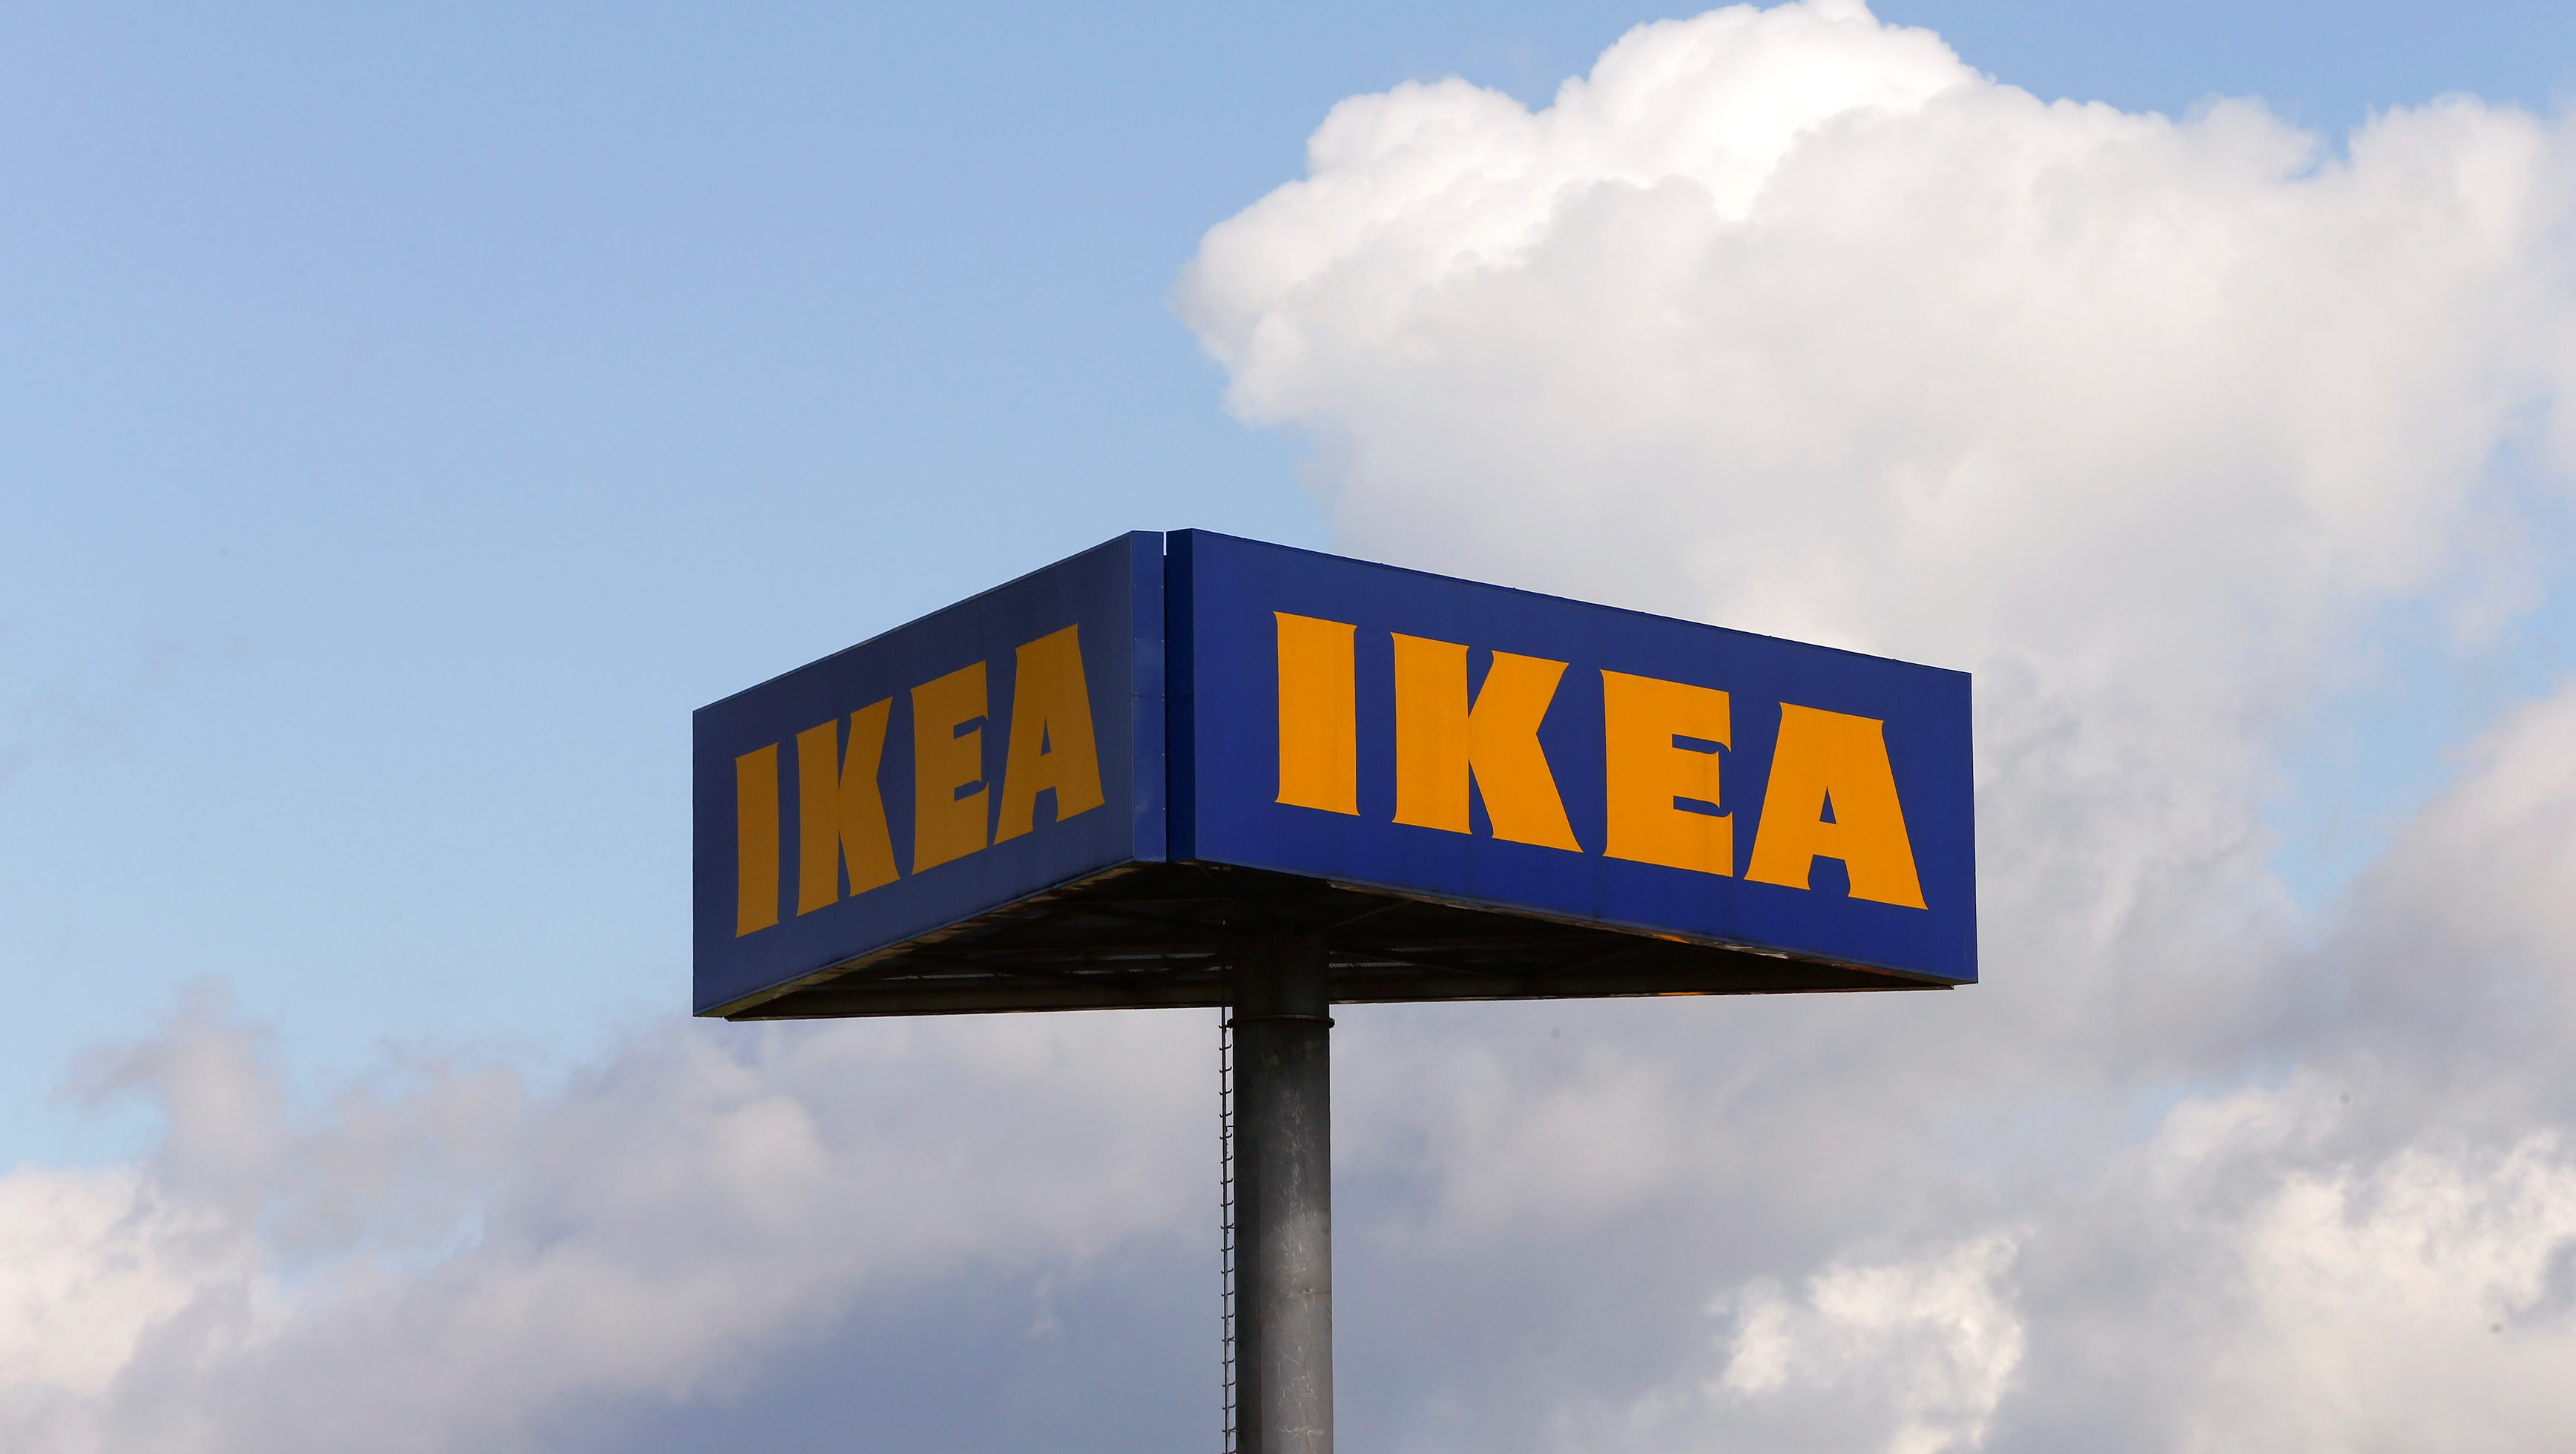 Ikea Has Revealed Its Menu For Indiaand There Are No Swedish